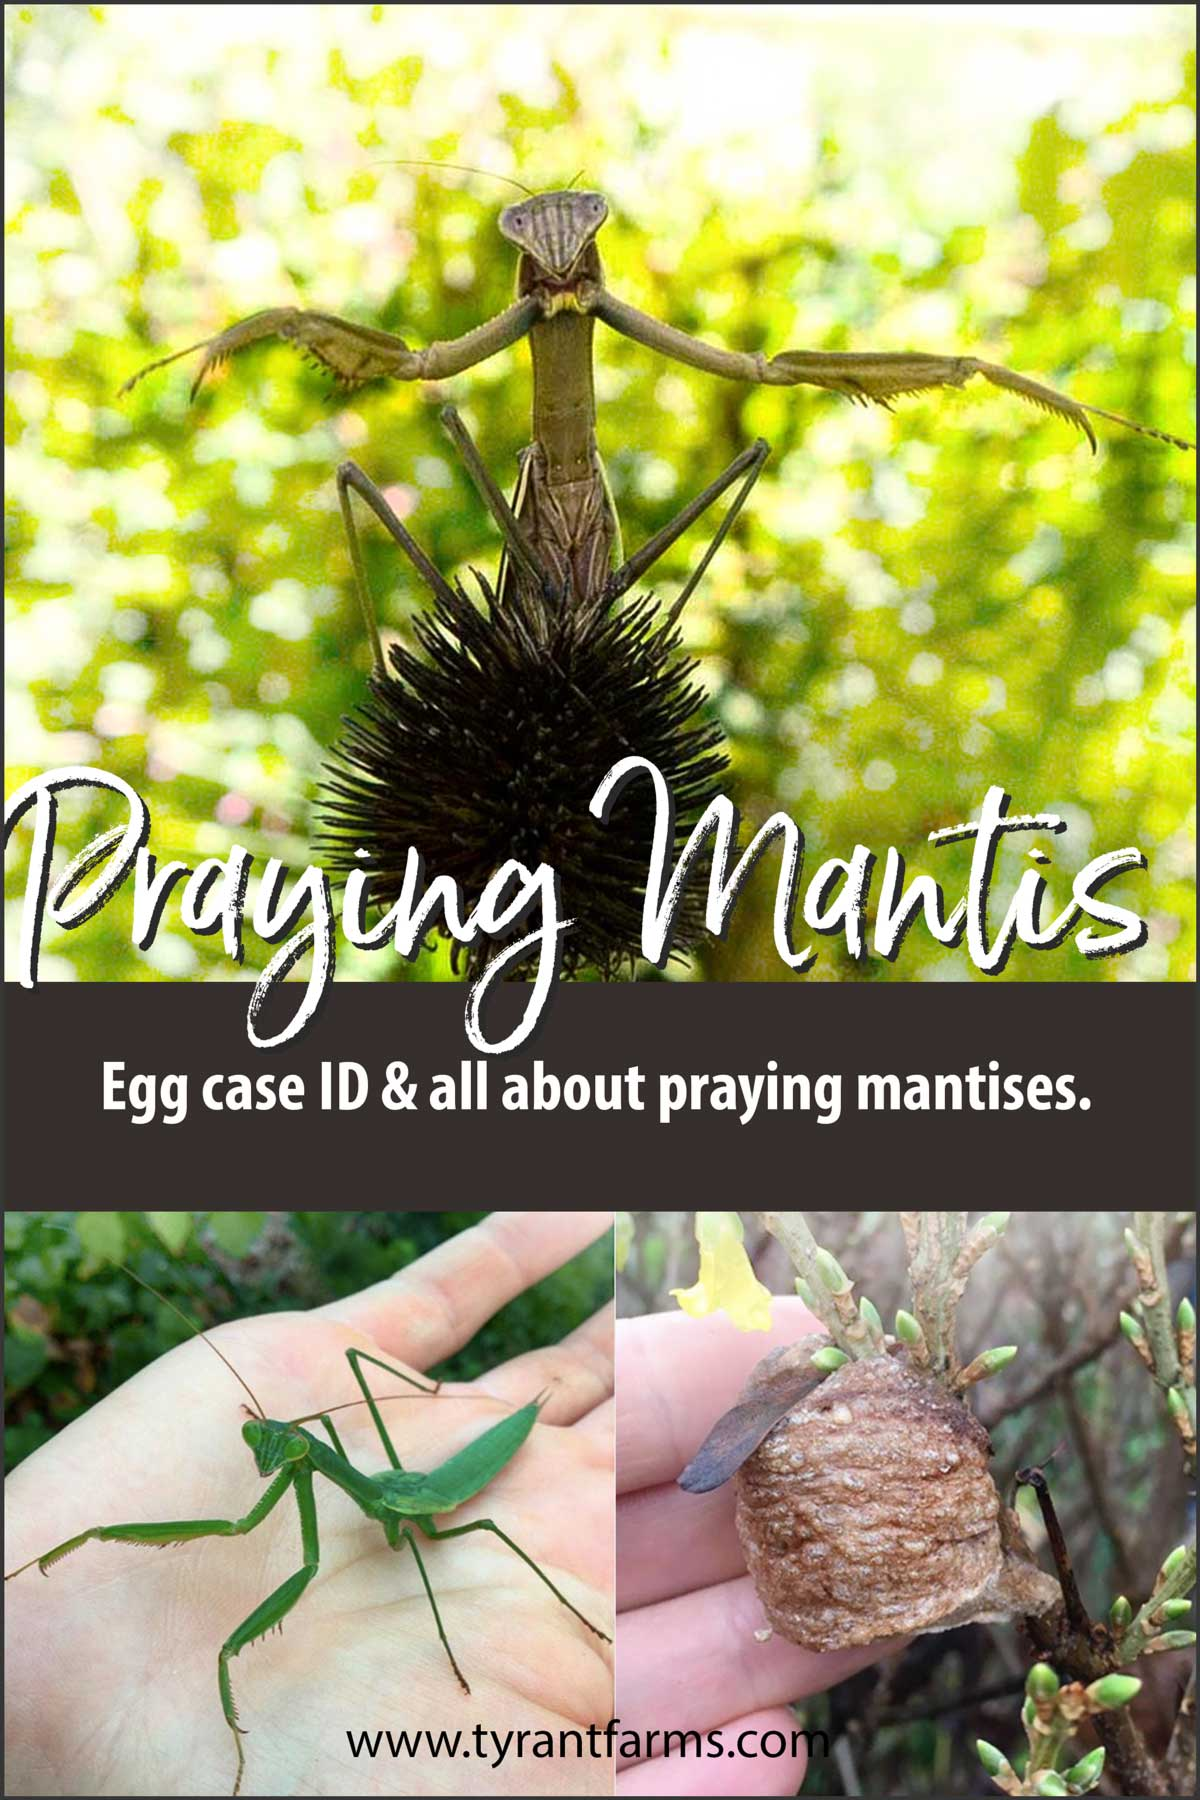 Praying Mantis Egg Case Identification And All About Praying Mantises Tyrant Farms